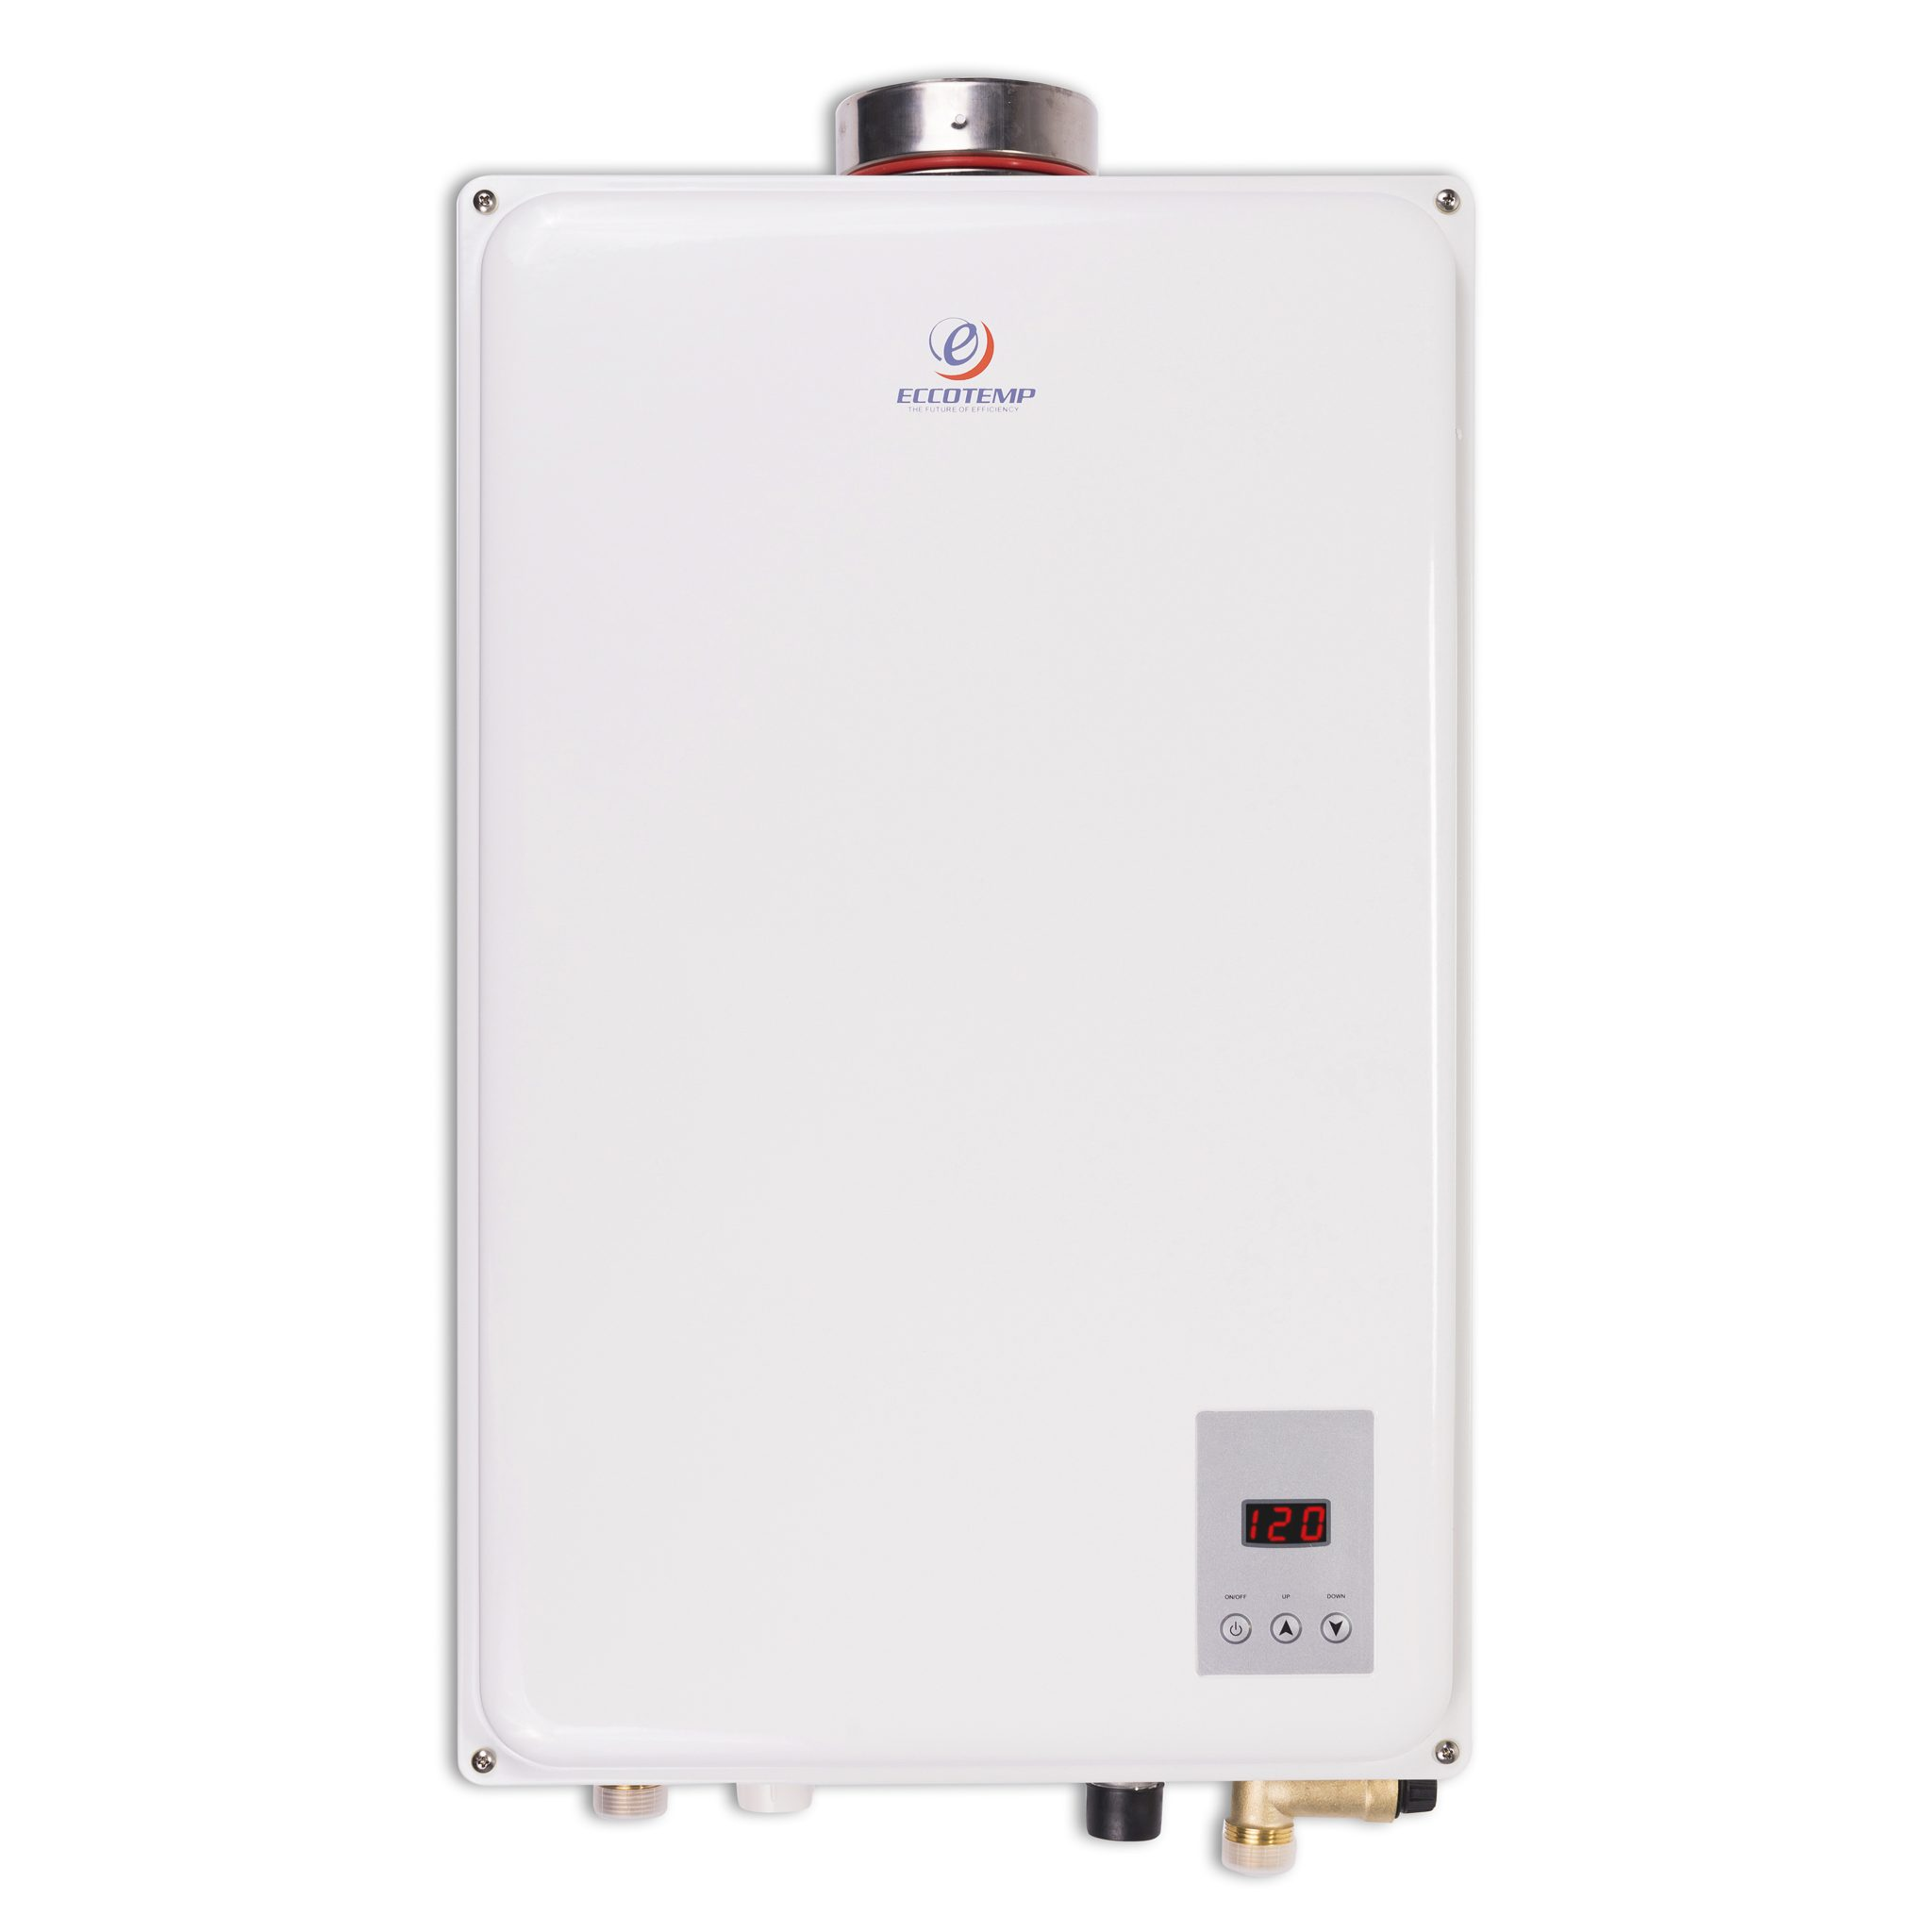 eccotemp 45hi ng indoor natural gas tankless water heater nuenergy distribution. Black Bedroom Furniture Sets. Home Design Ideas